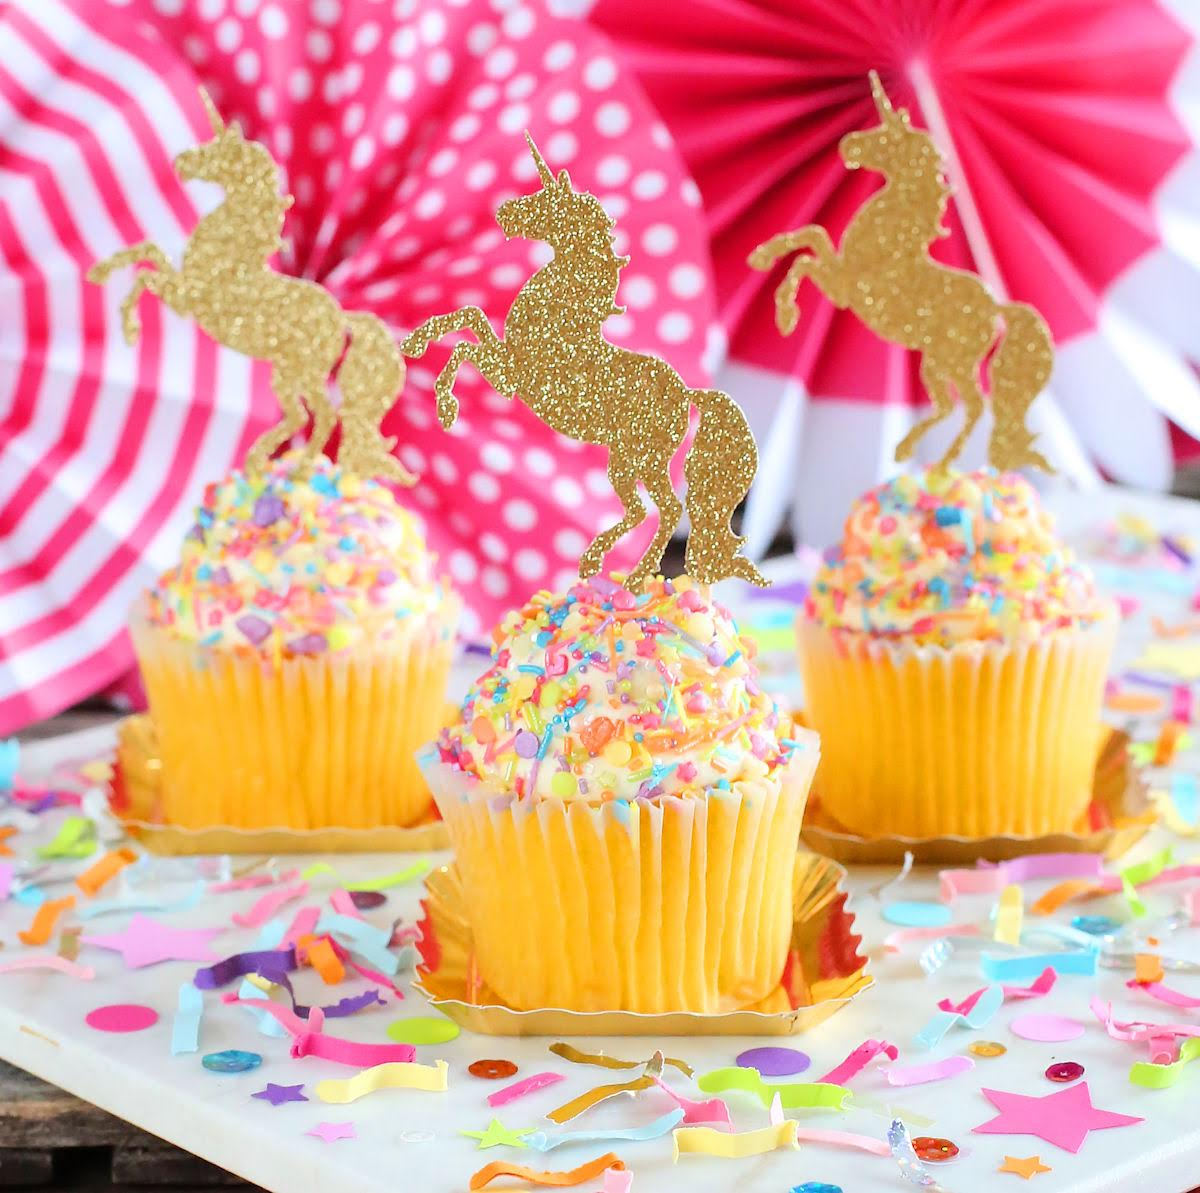 Colorful Unicorn Must-Have Party Items for a Perfectly Styled Unicorn Theme Dessert Table - Unicorn Cupcake Toppers, Sprinkles and Festive Fetti Confetti - from The Bakers Party Shop - see more on www.GiggleHearts.com